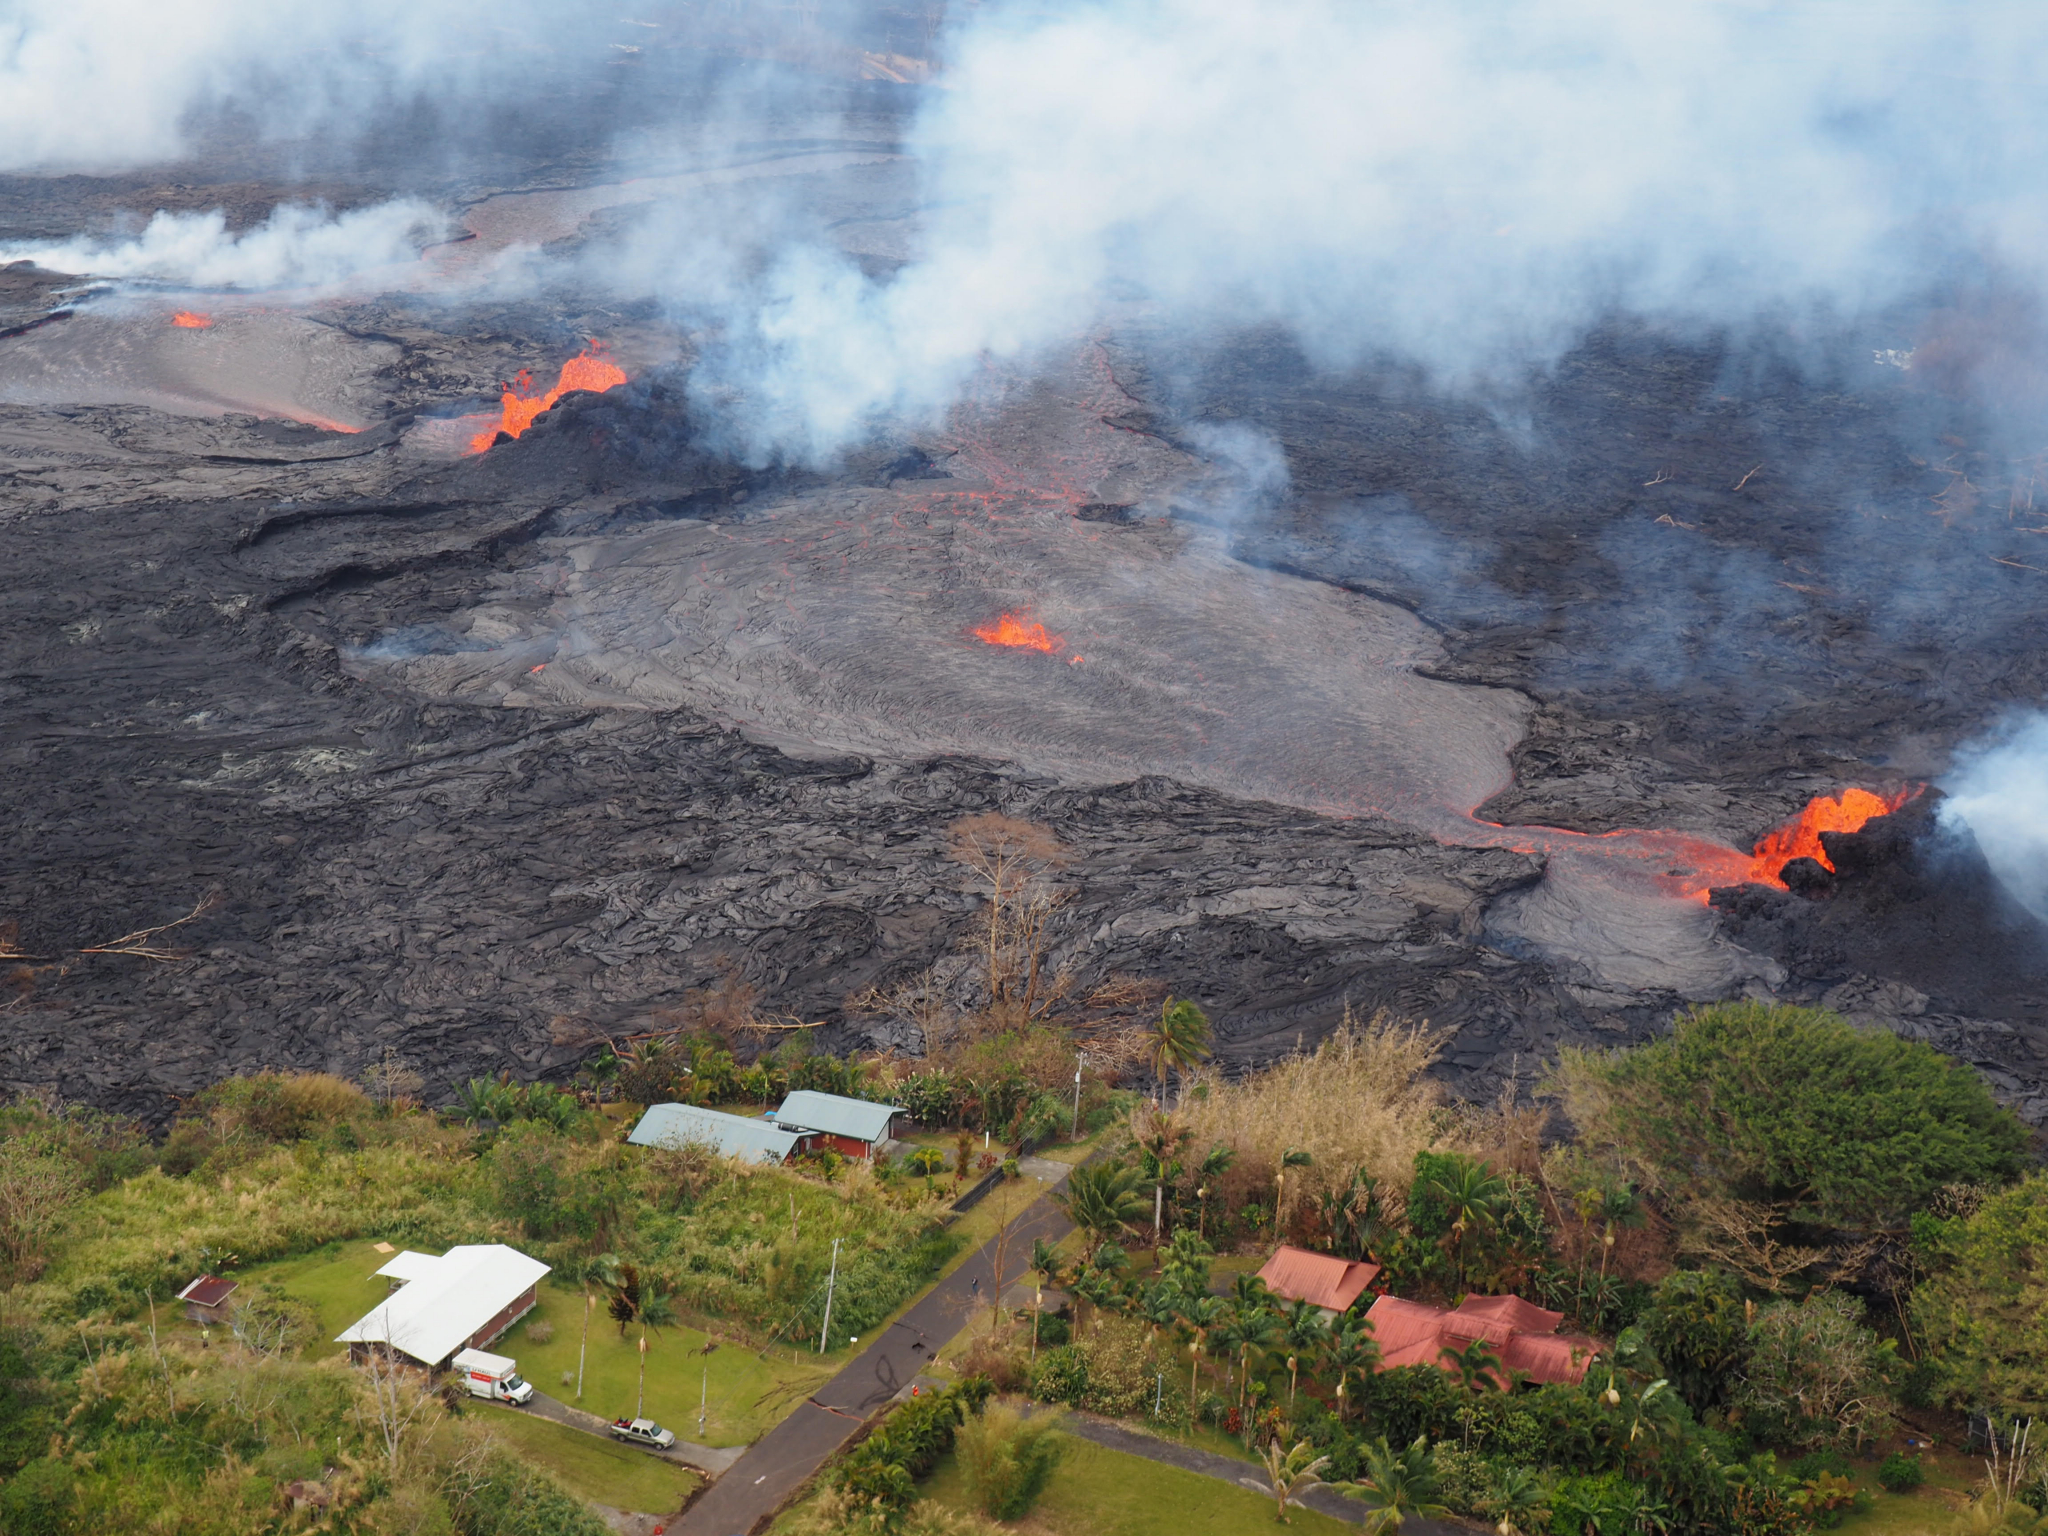 n May 2018, eruptive fissures opened and deposited lava within the Leilani Estates subdivision on the Island of Hawaii. Over 700 homes were destroyed, displacing more than 2000 people. (credit: B. Shiro, USGS)